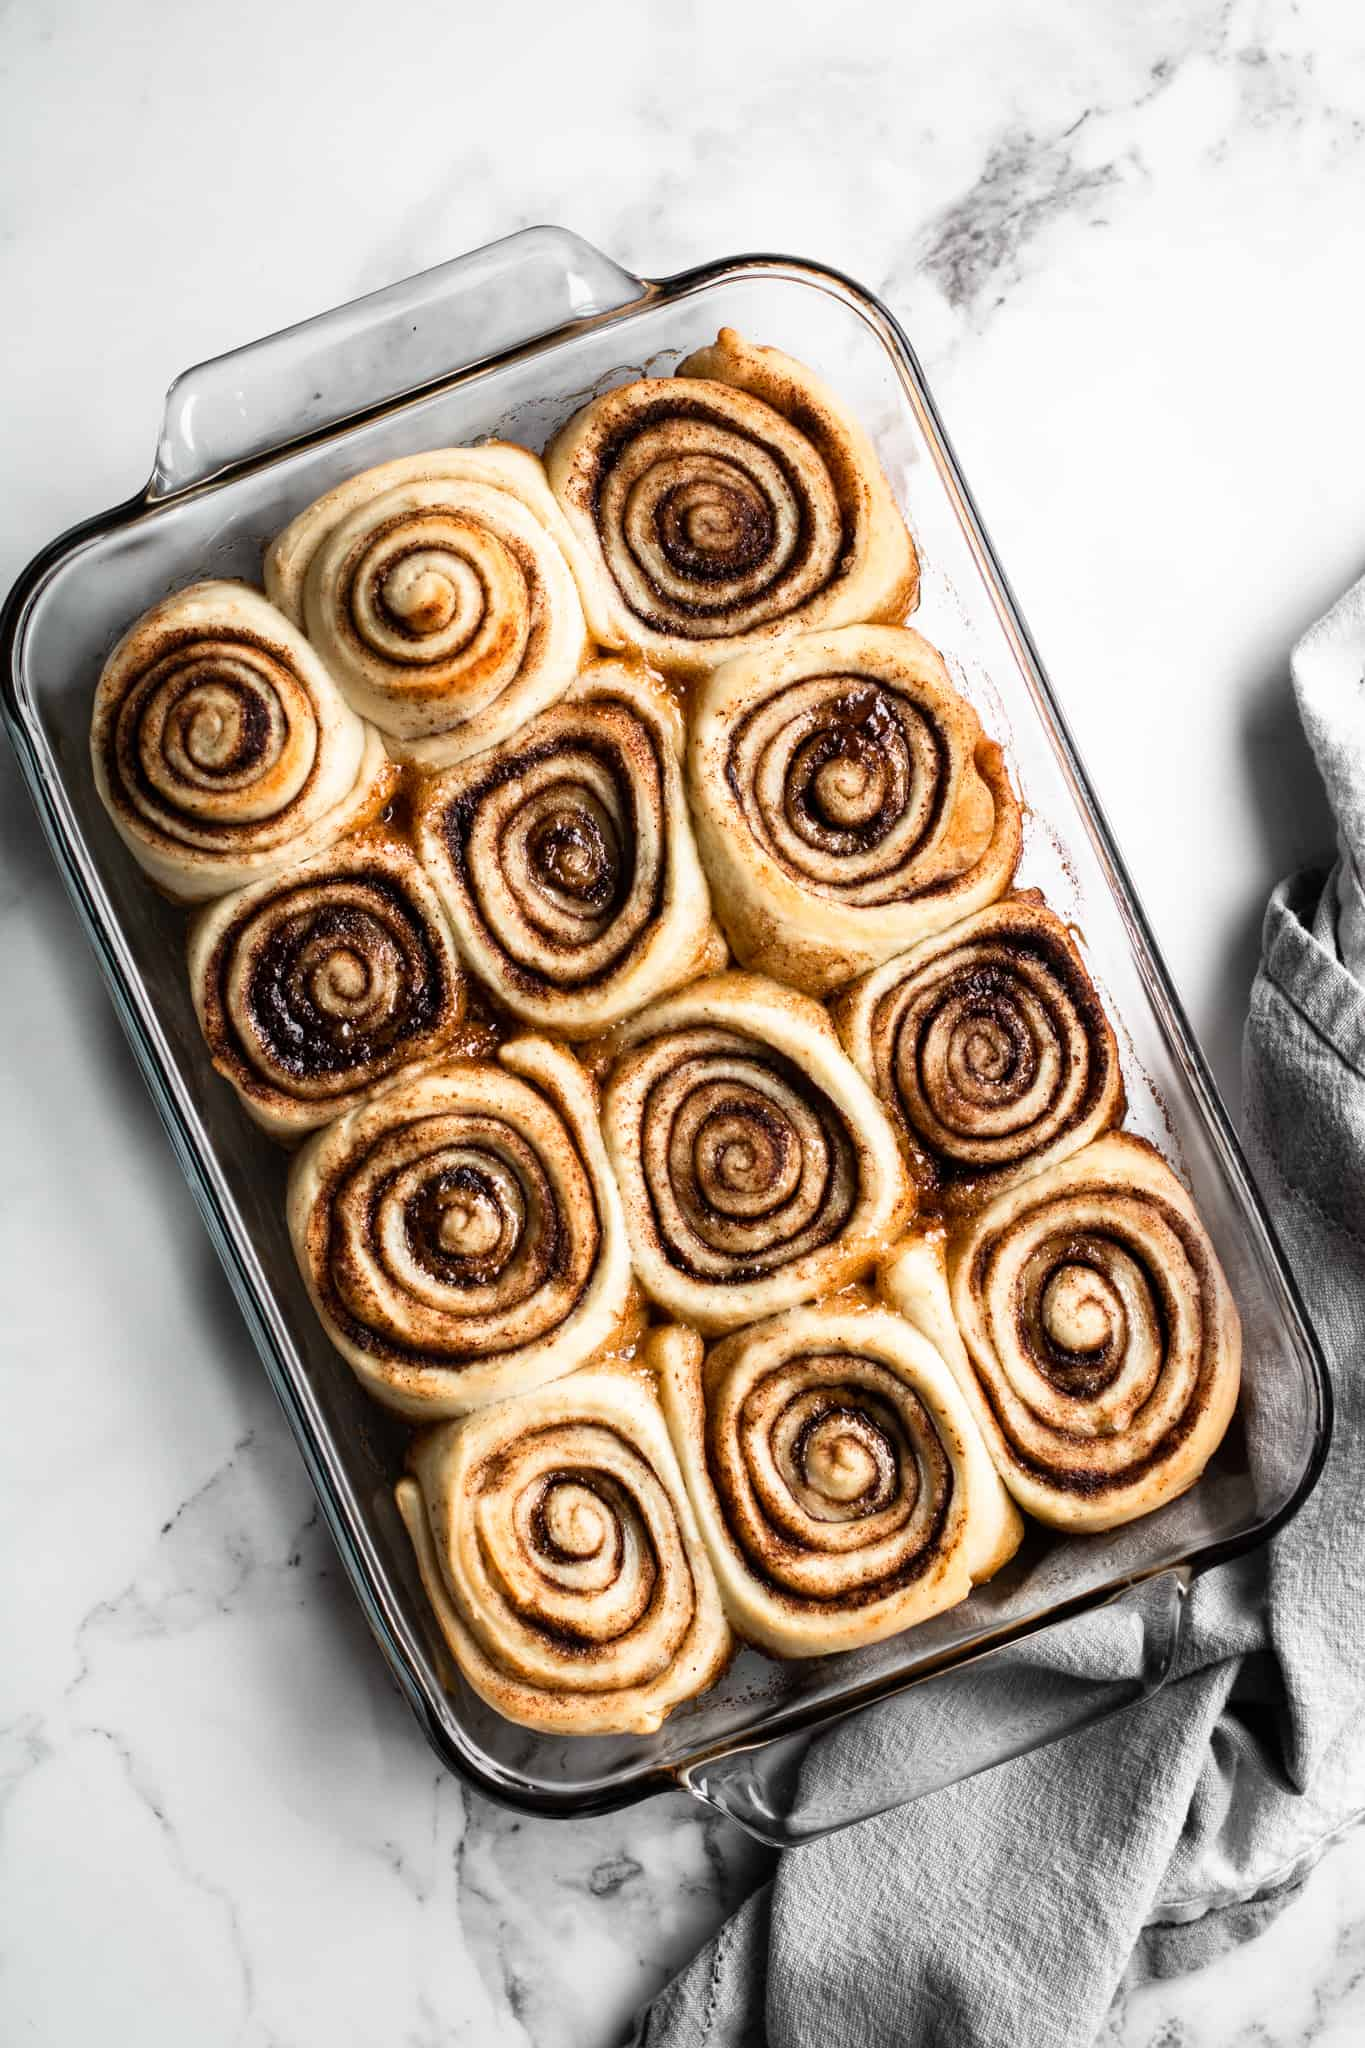 Baked cinnamon rolls in a glass dish